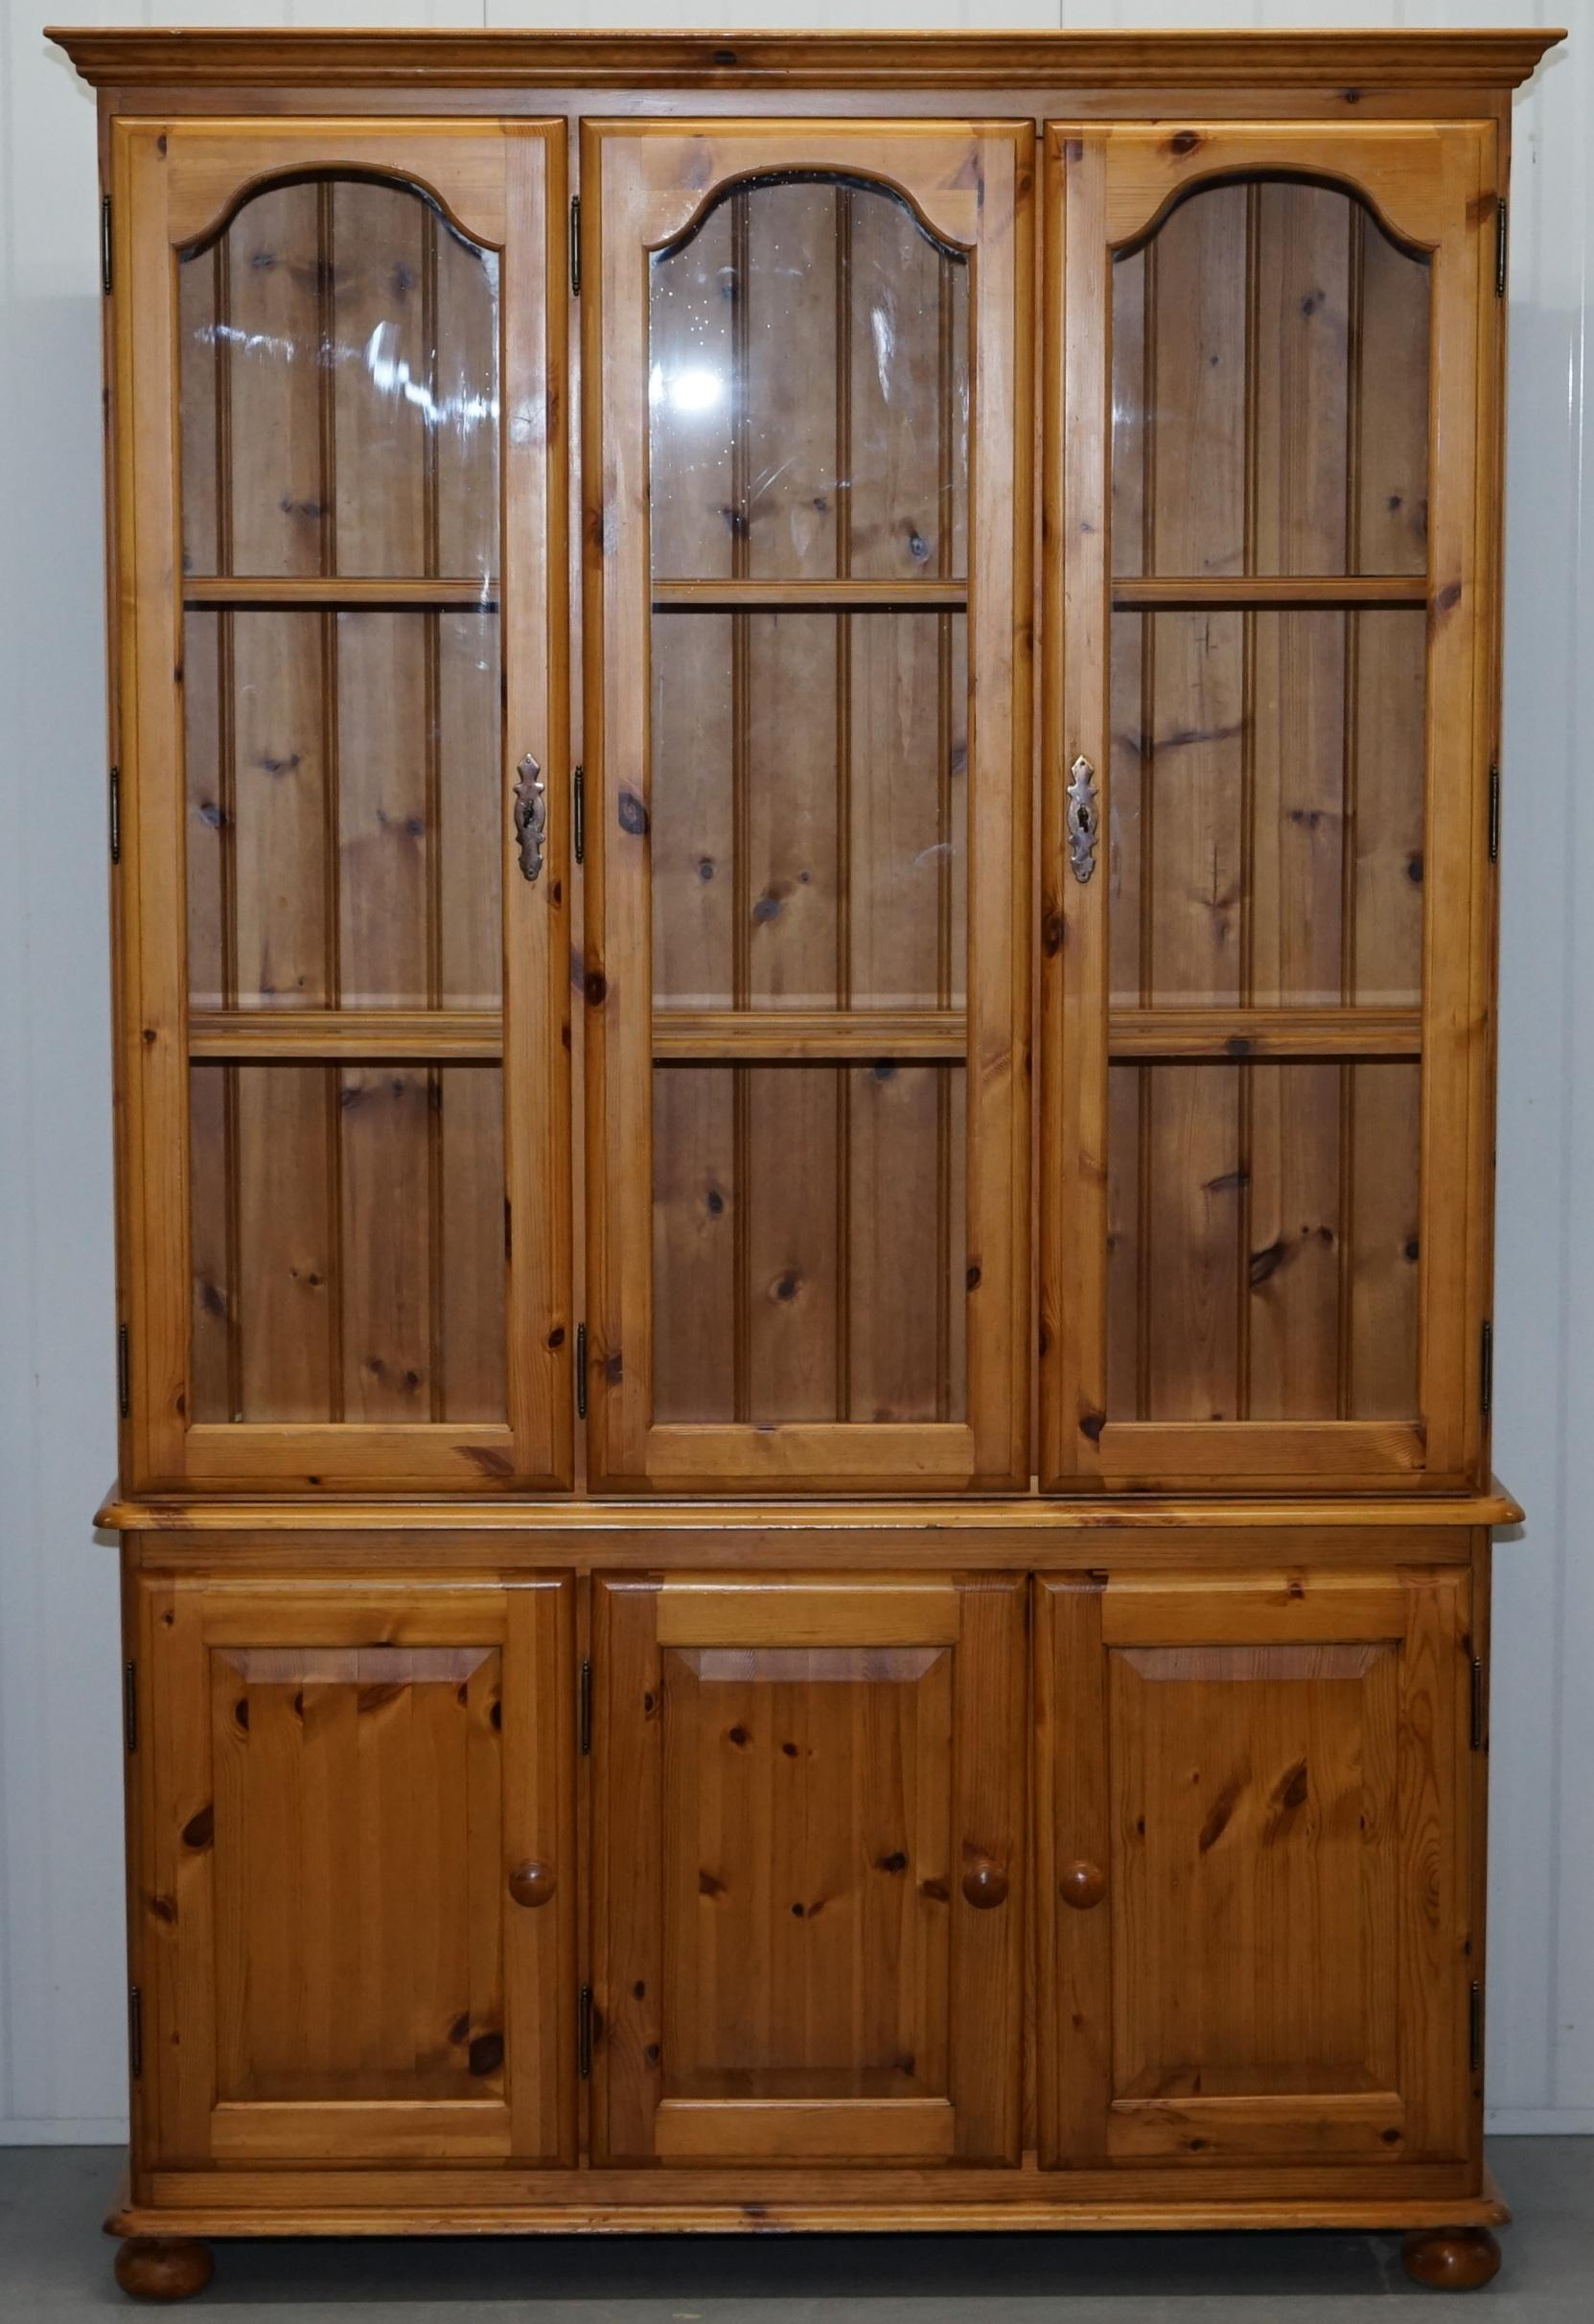 We Are Delighted To Offer For Sale This Lovely Quad Bank Solid English Pine  Ducal Welsh